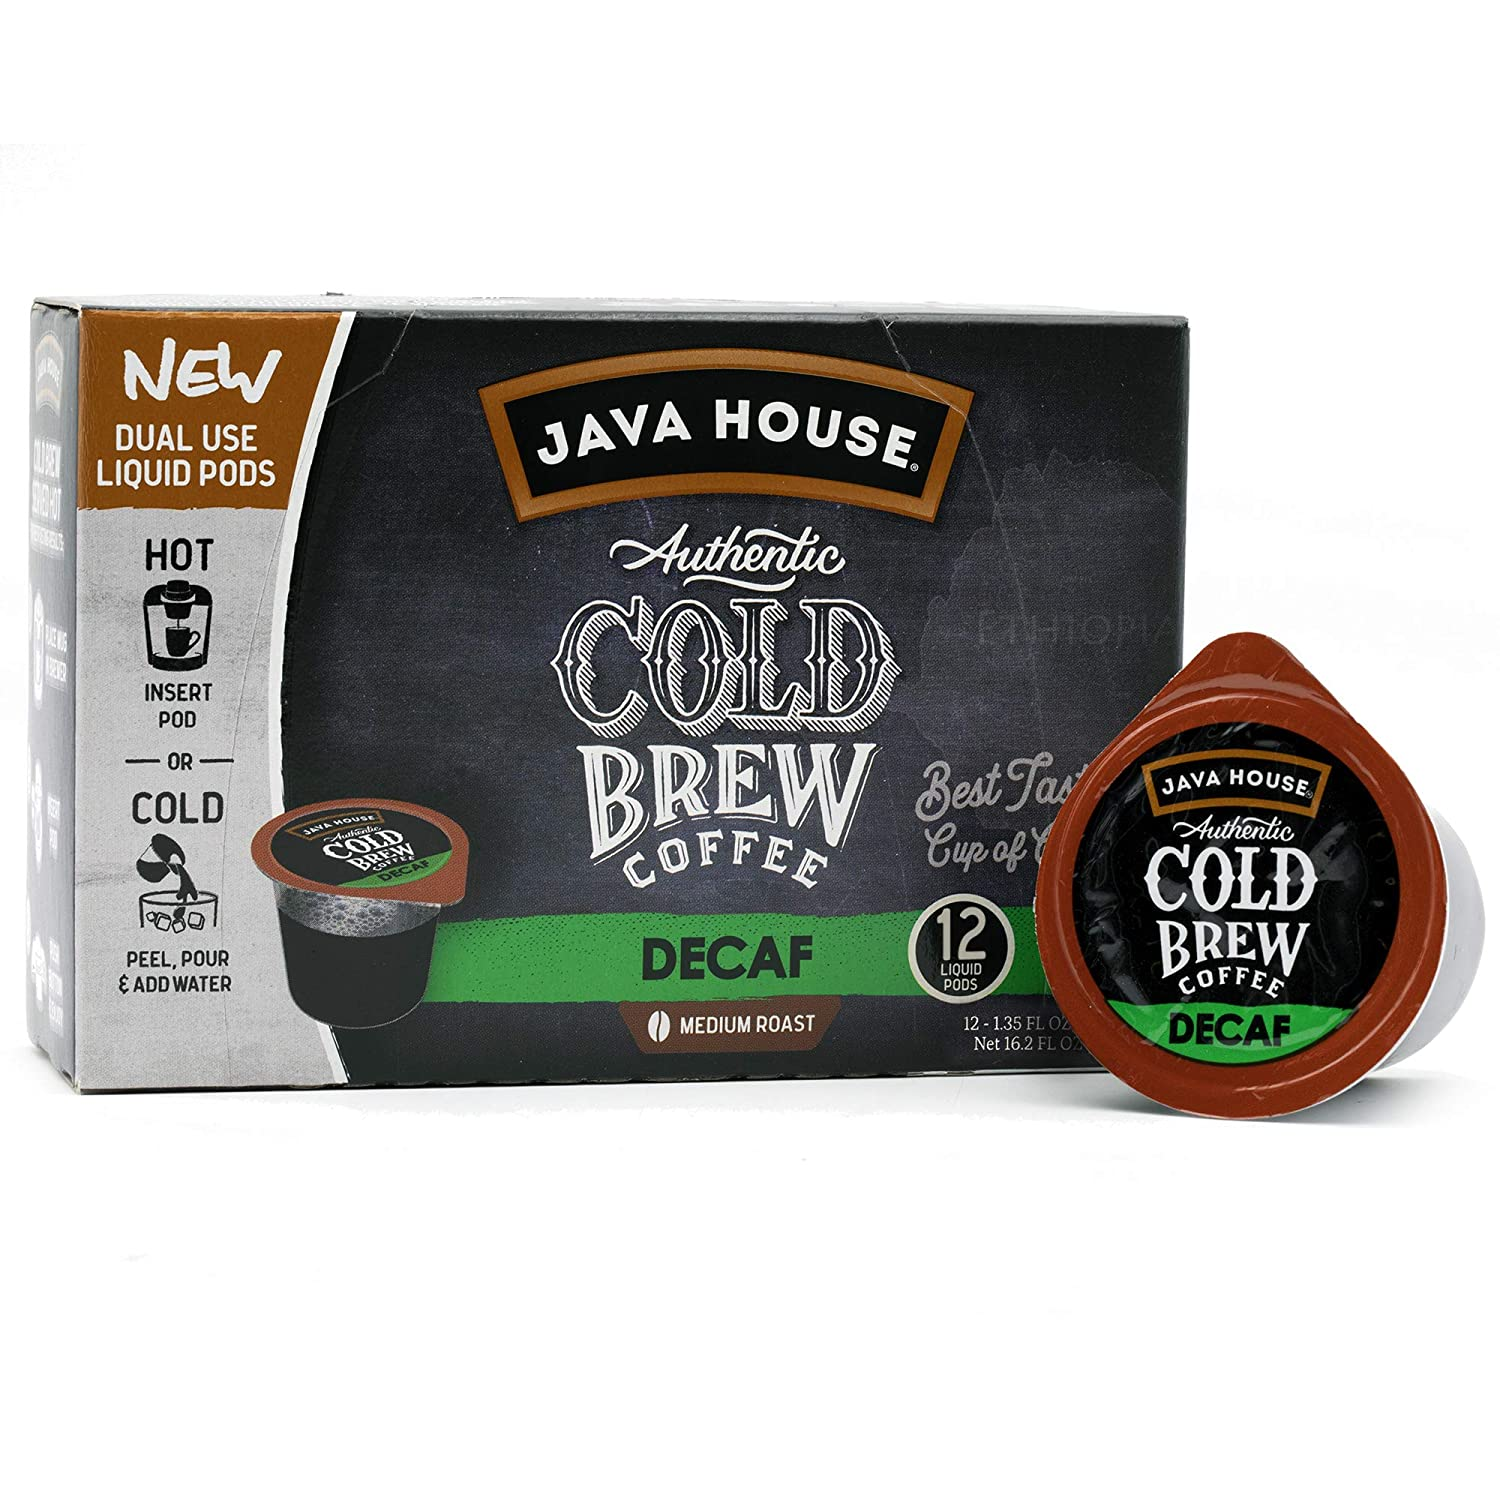 Java House Cold Brew Coffee Concentrate Single Serve Liquid Pods - 1.35 Fluid Ounces Each (Decaf, 12 Count)